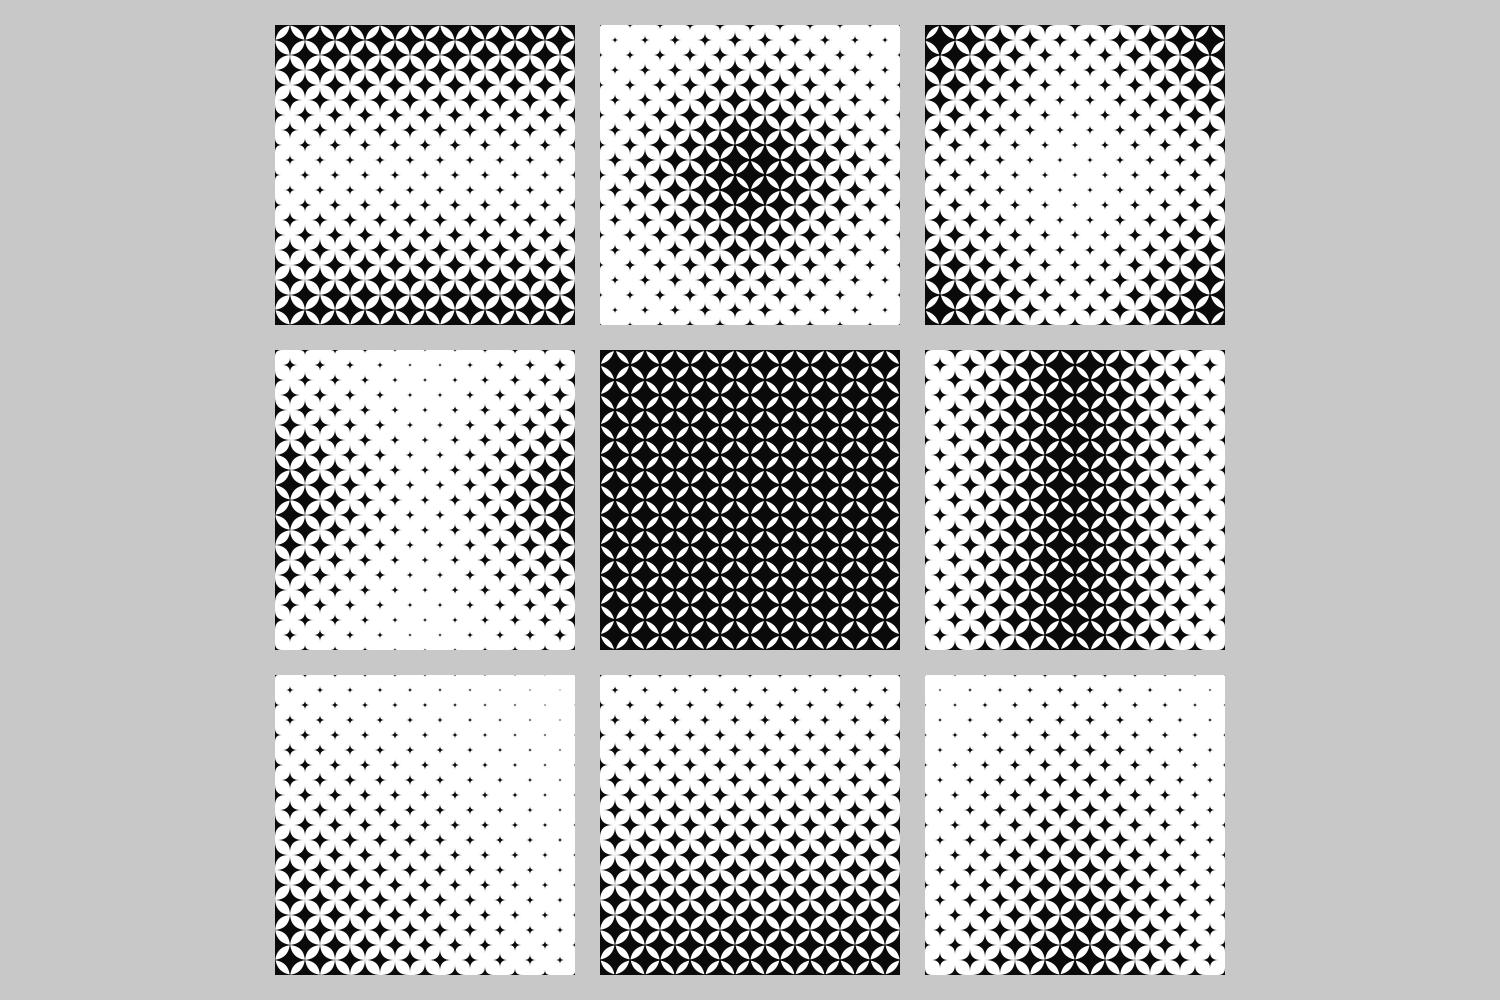 Download Free 9 Monochrome Patterns Graphic By Davidzydd Creative Fabrica for Cricut Explore, Silhouette and other cutting machines.